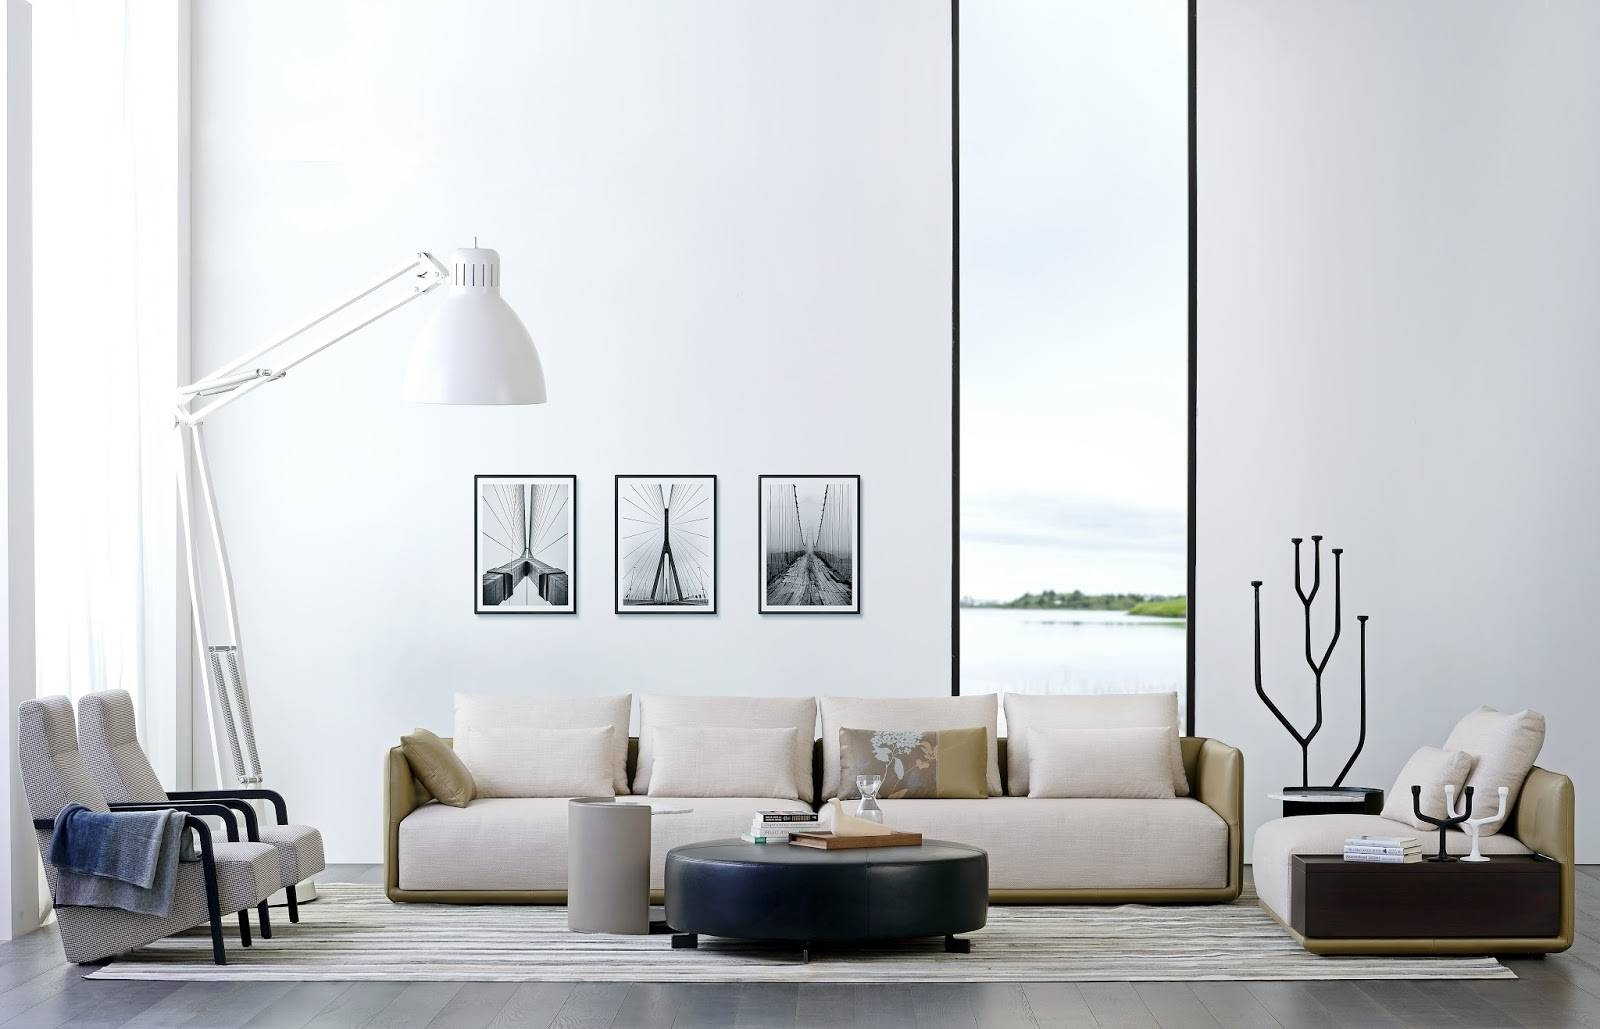 Camerich Contemporary Furniture - The White Approach inside Camerich Sofas (Image 5 of 15)